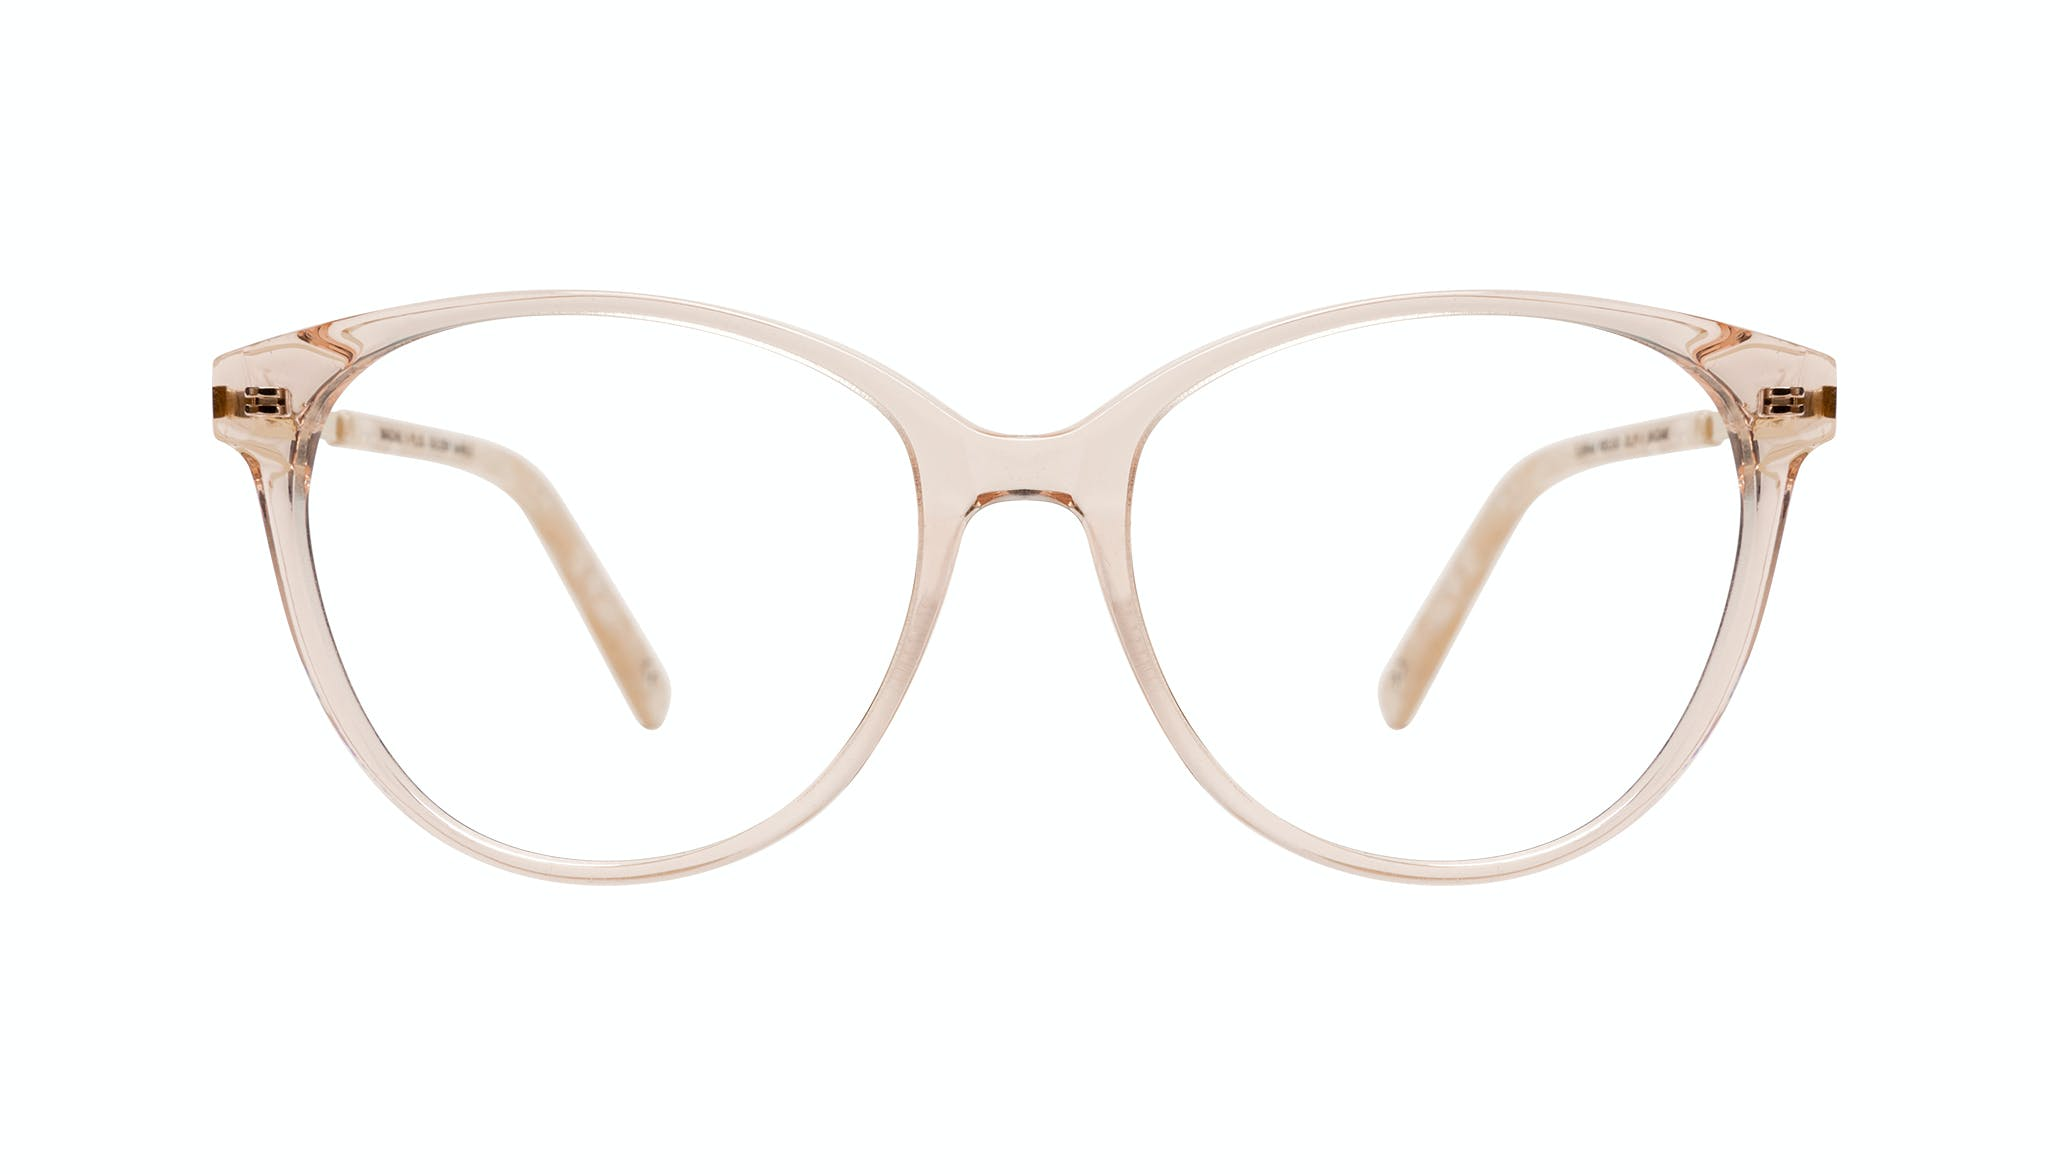 Affordable Fashion Glasses Round Eyeglasses Women Imagine II Plus Golden Marble Front